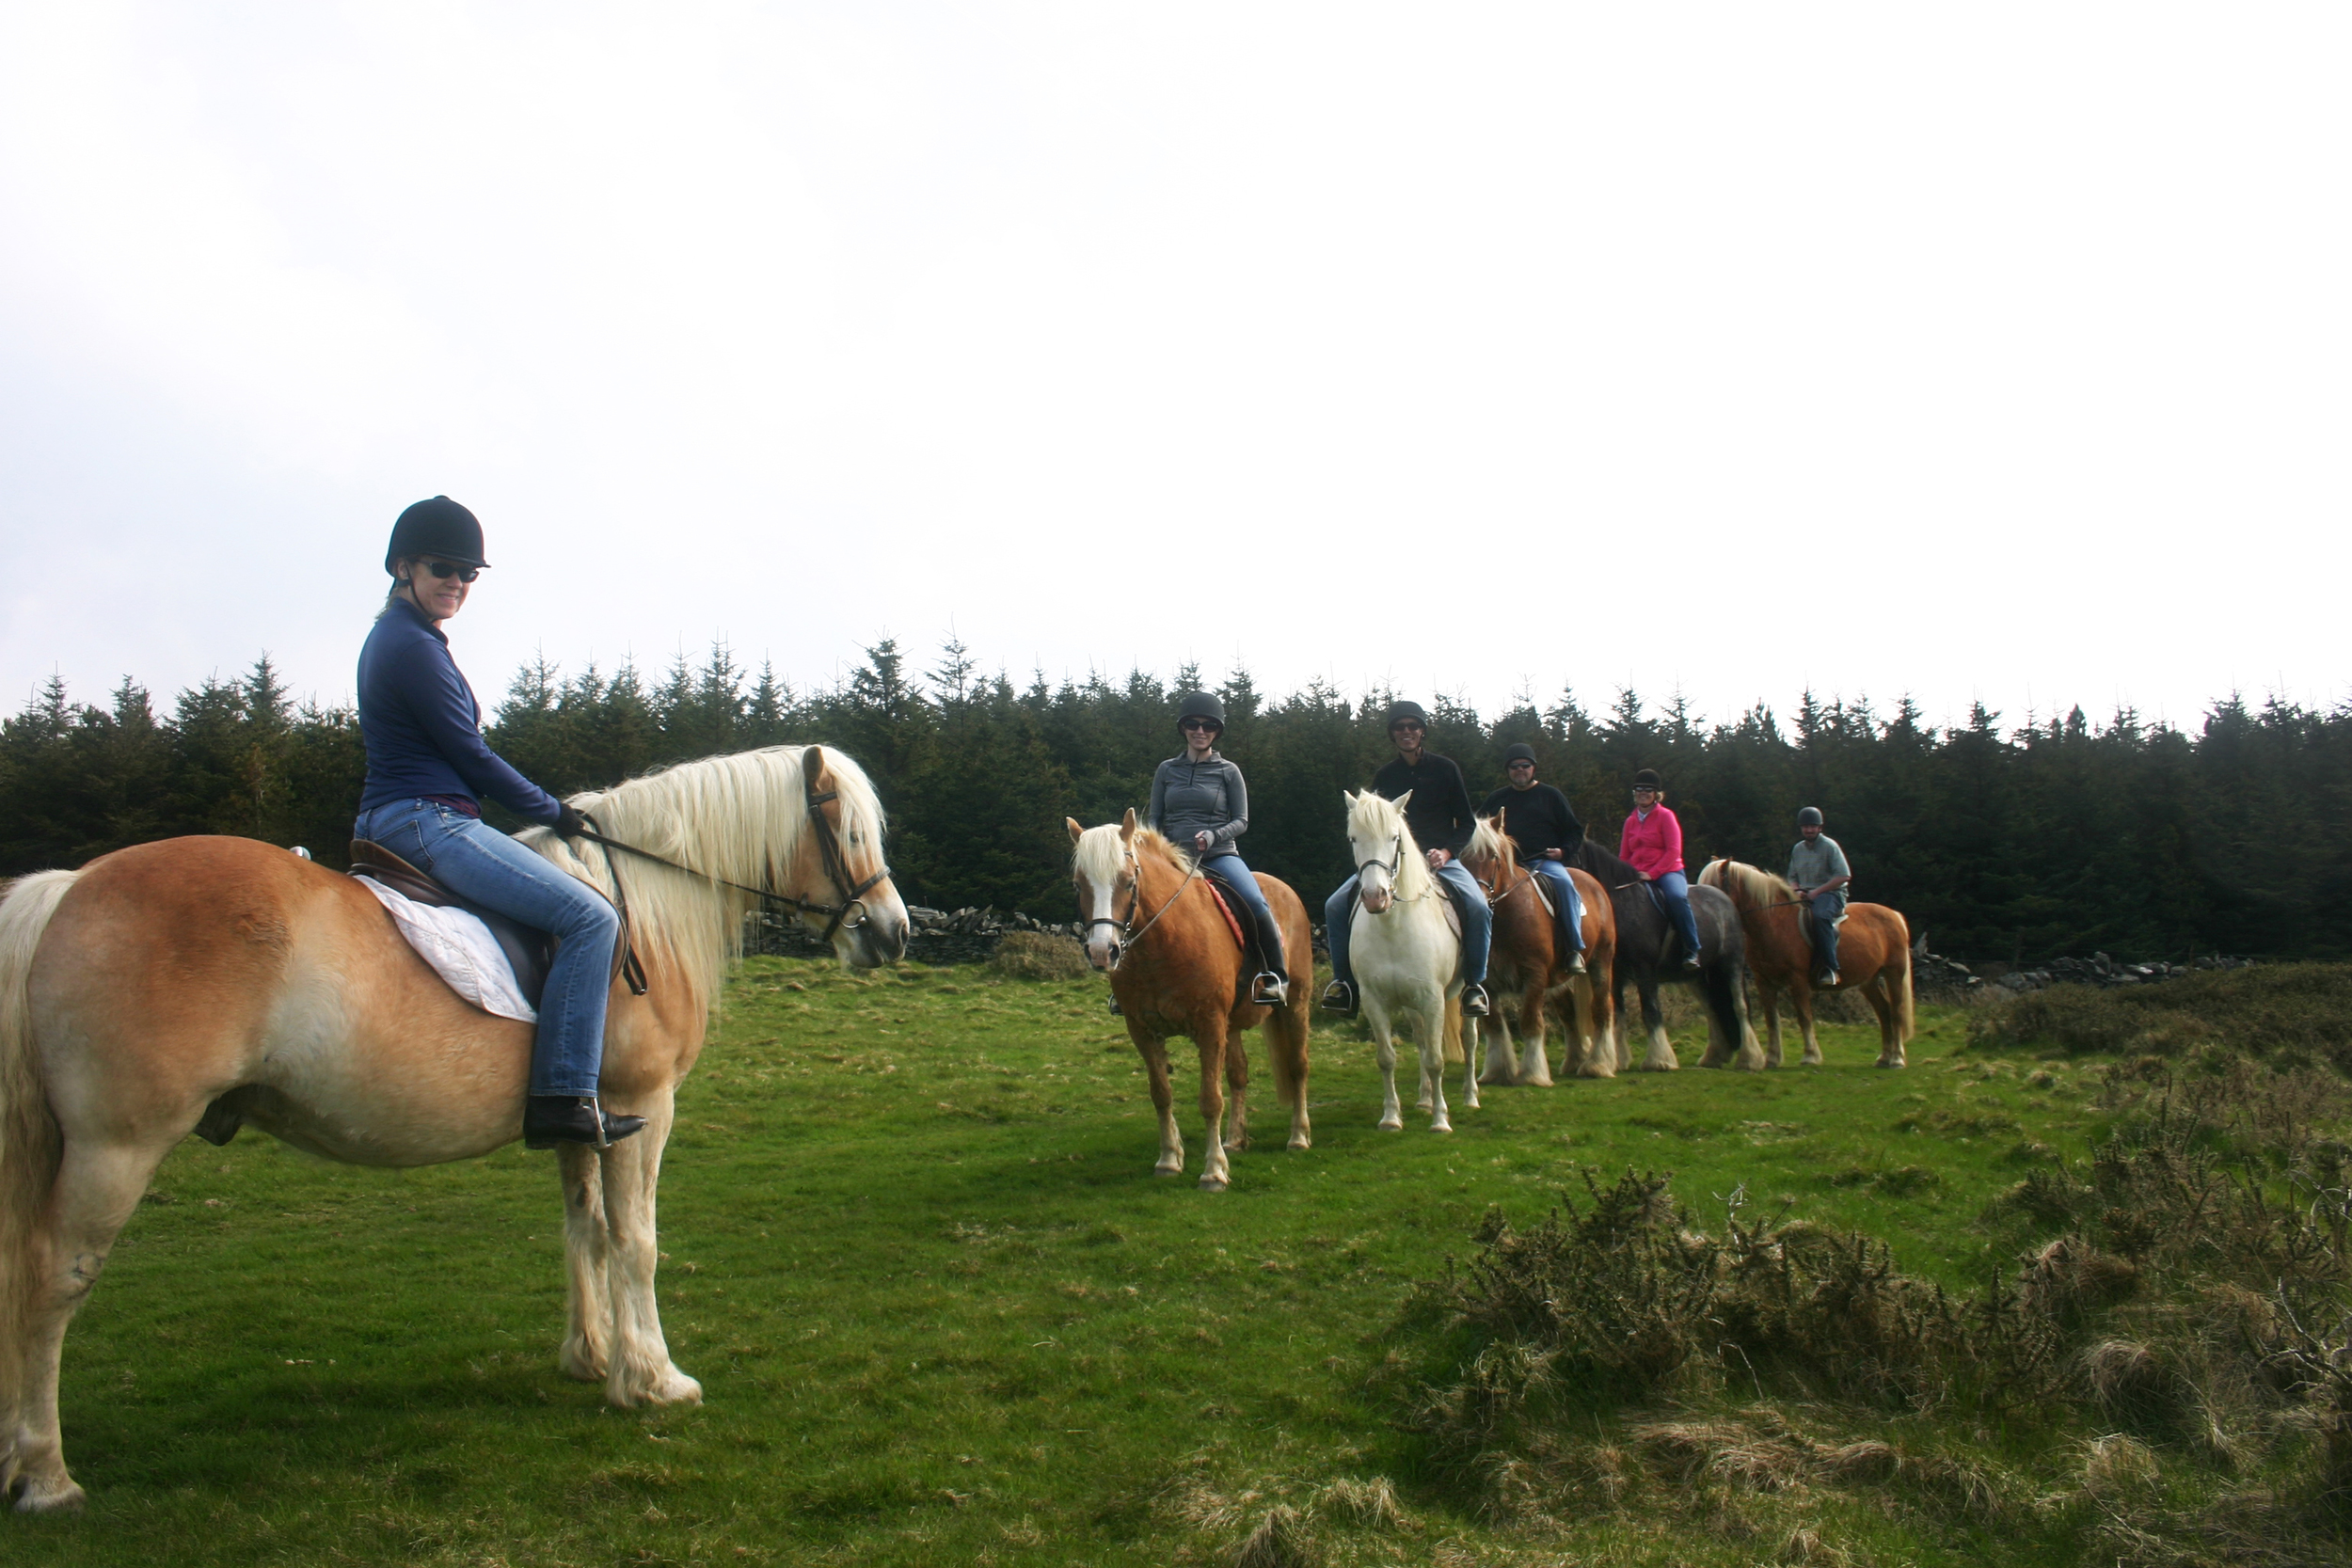 From left to right, the ponies are Whiskey, Patsy, Pickles, Humpty, Barney and Cody.